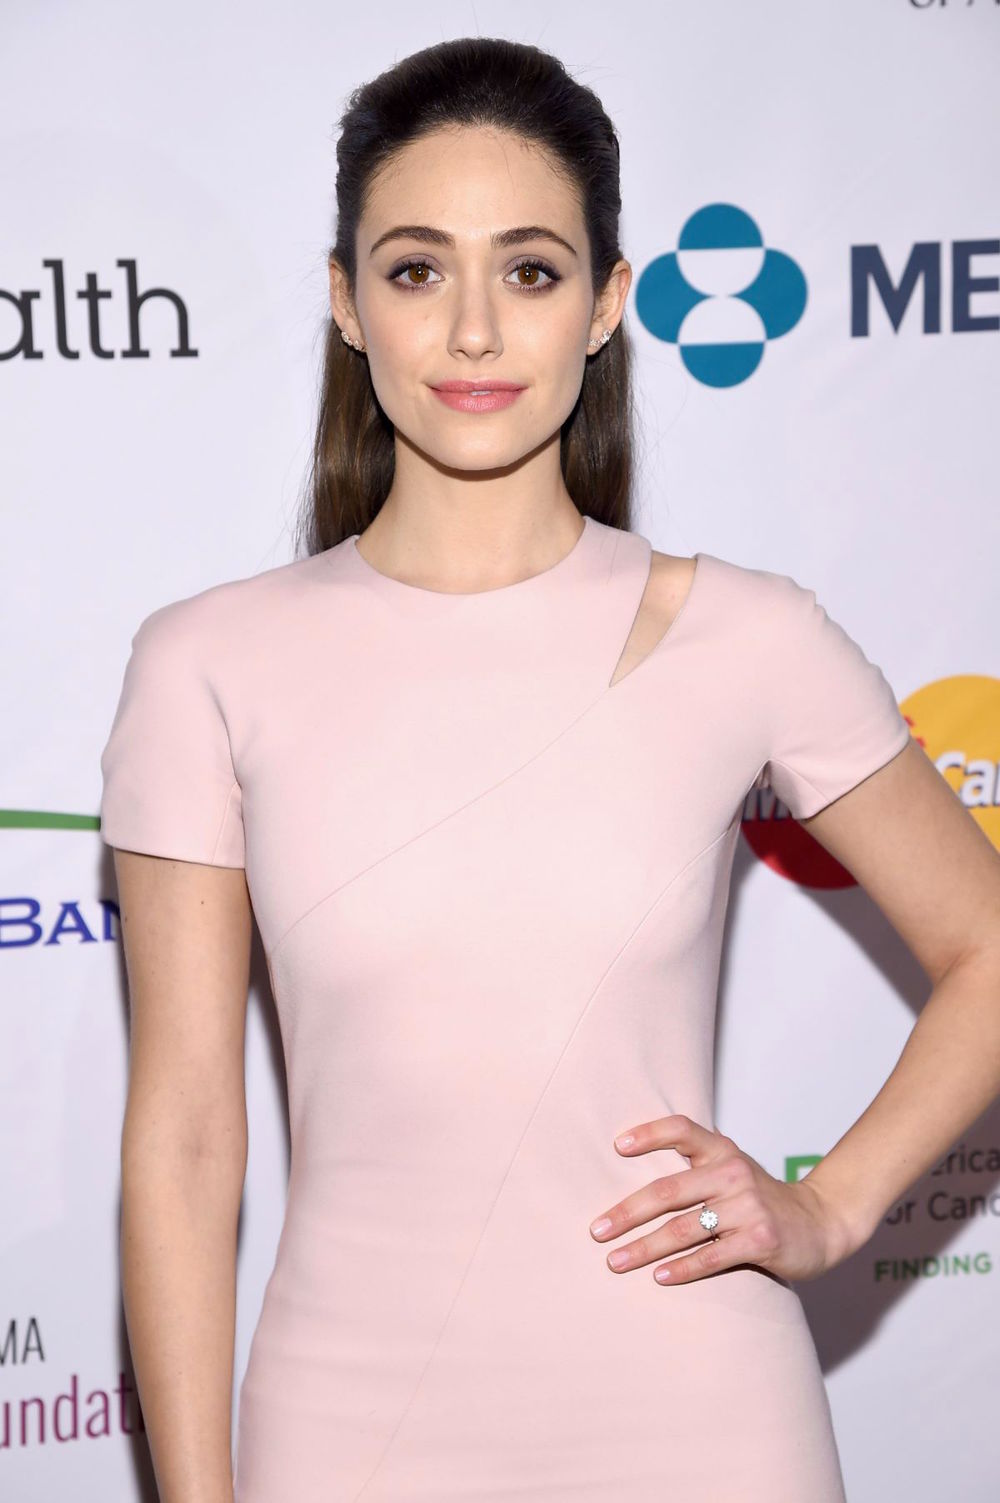 emmy-rossum-stand-up-to-cancer-s-new-york-standing-room-only-event-in-new-york-city_1.jpg